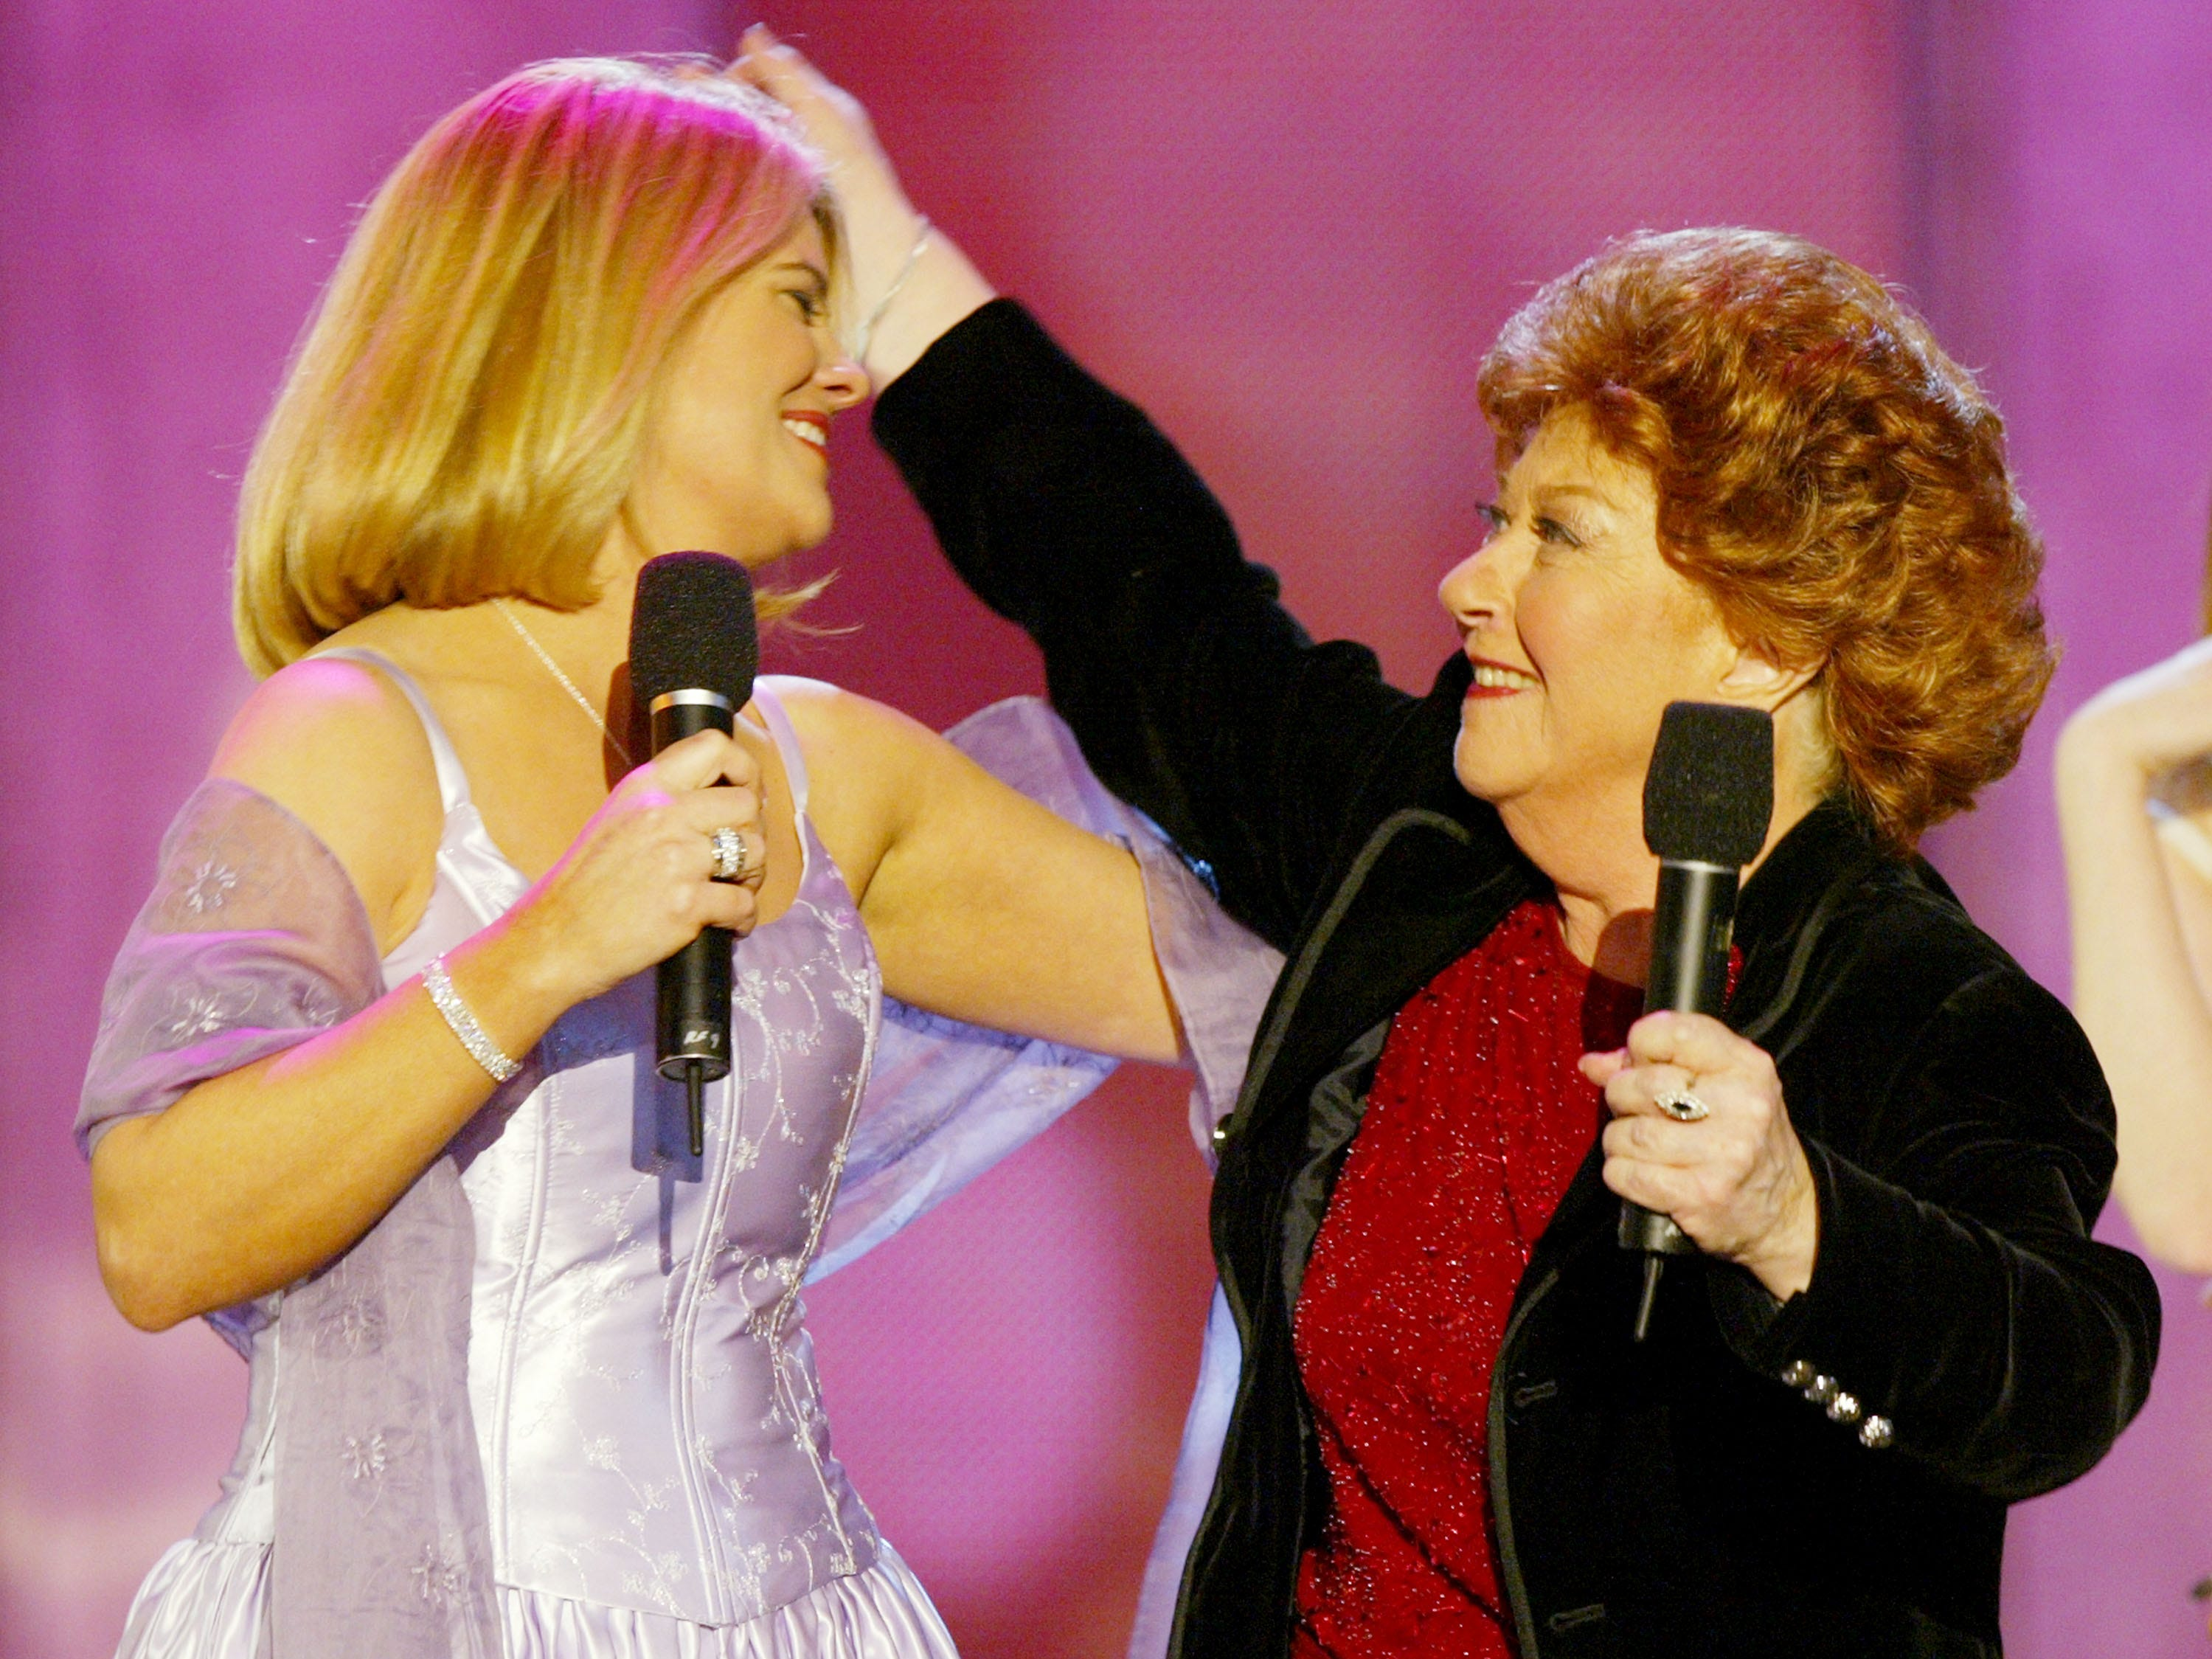 Charlotte Rae, right, and Lisa Whelchel speak on stage at the 2nd Annual TV Land Awards held on March 7, 2004, at The Hollywood Palladium, in Hollywood, Calif.